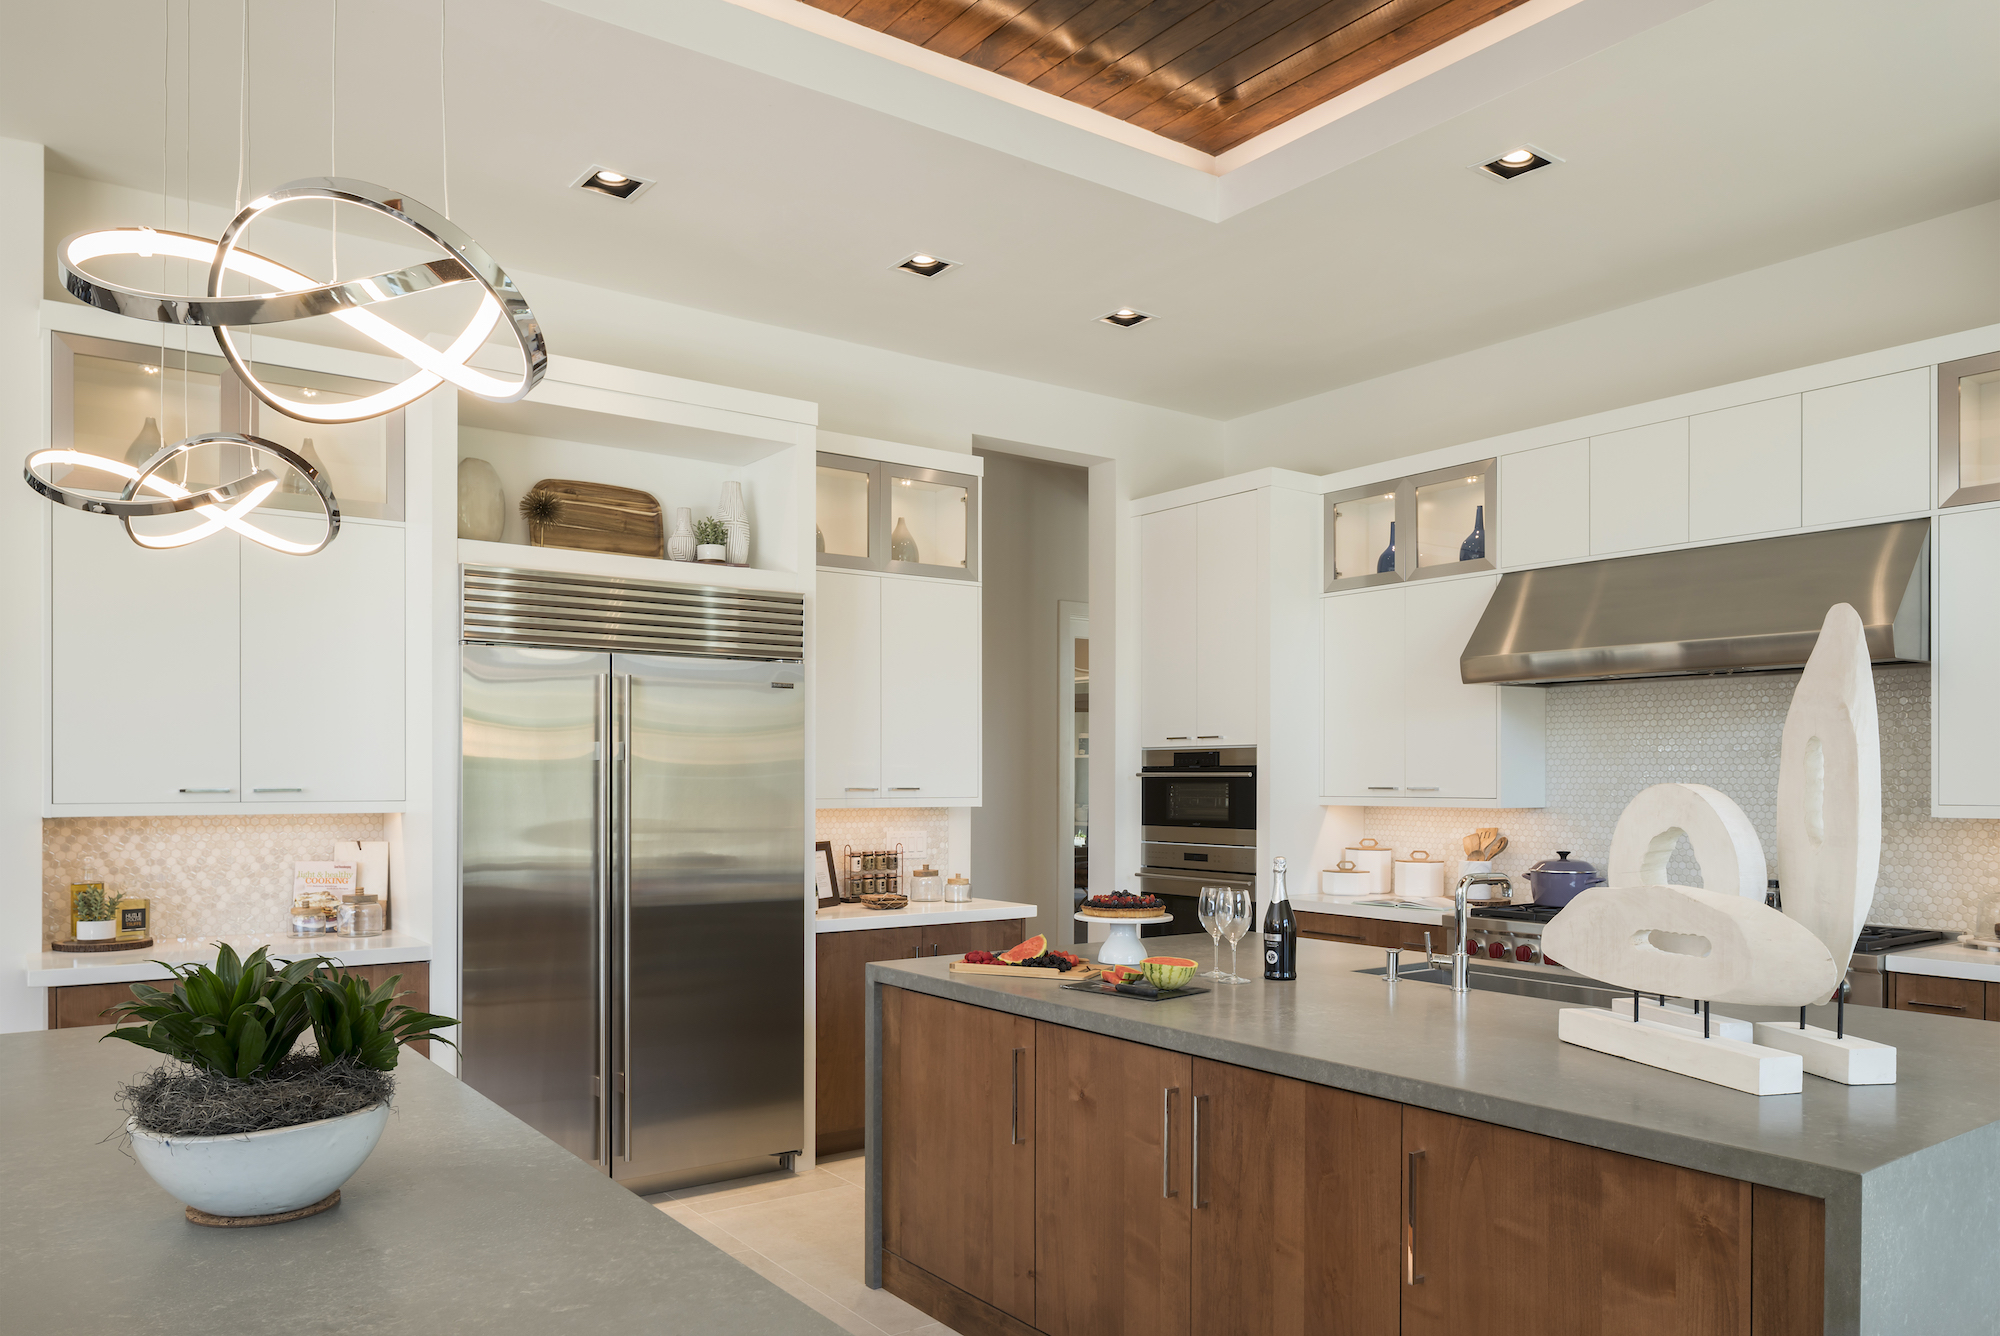 Toll Brothers kitchen with white cabinets and stainless steel appliances